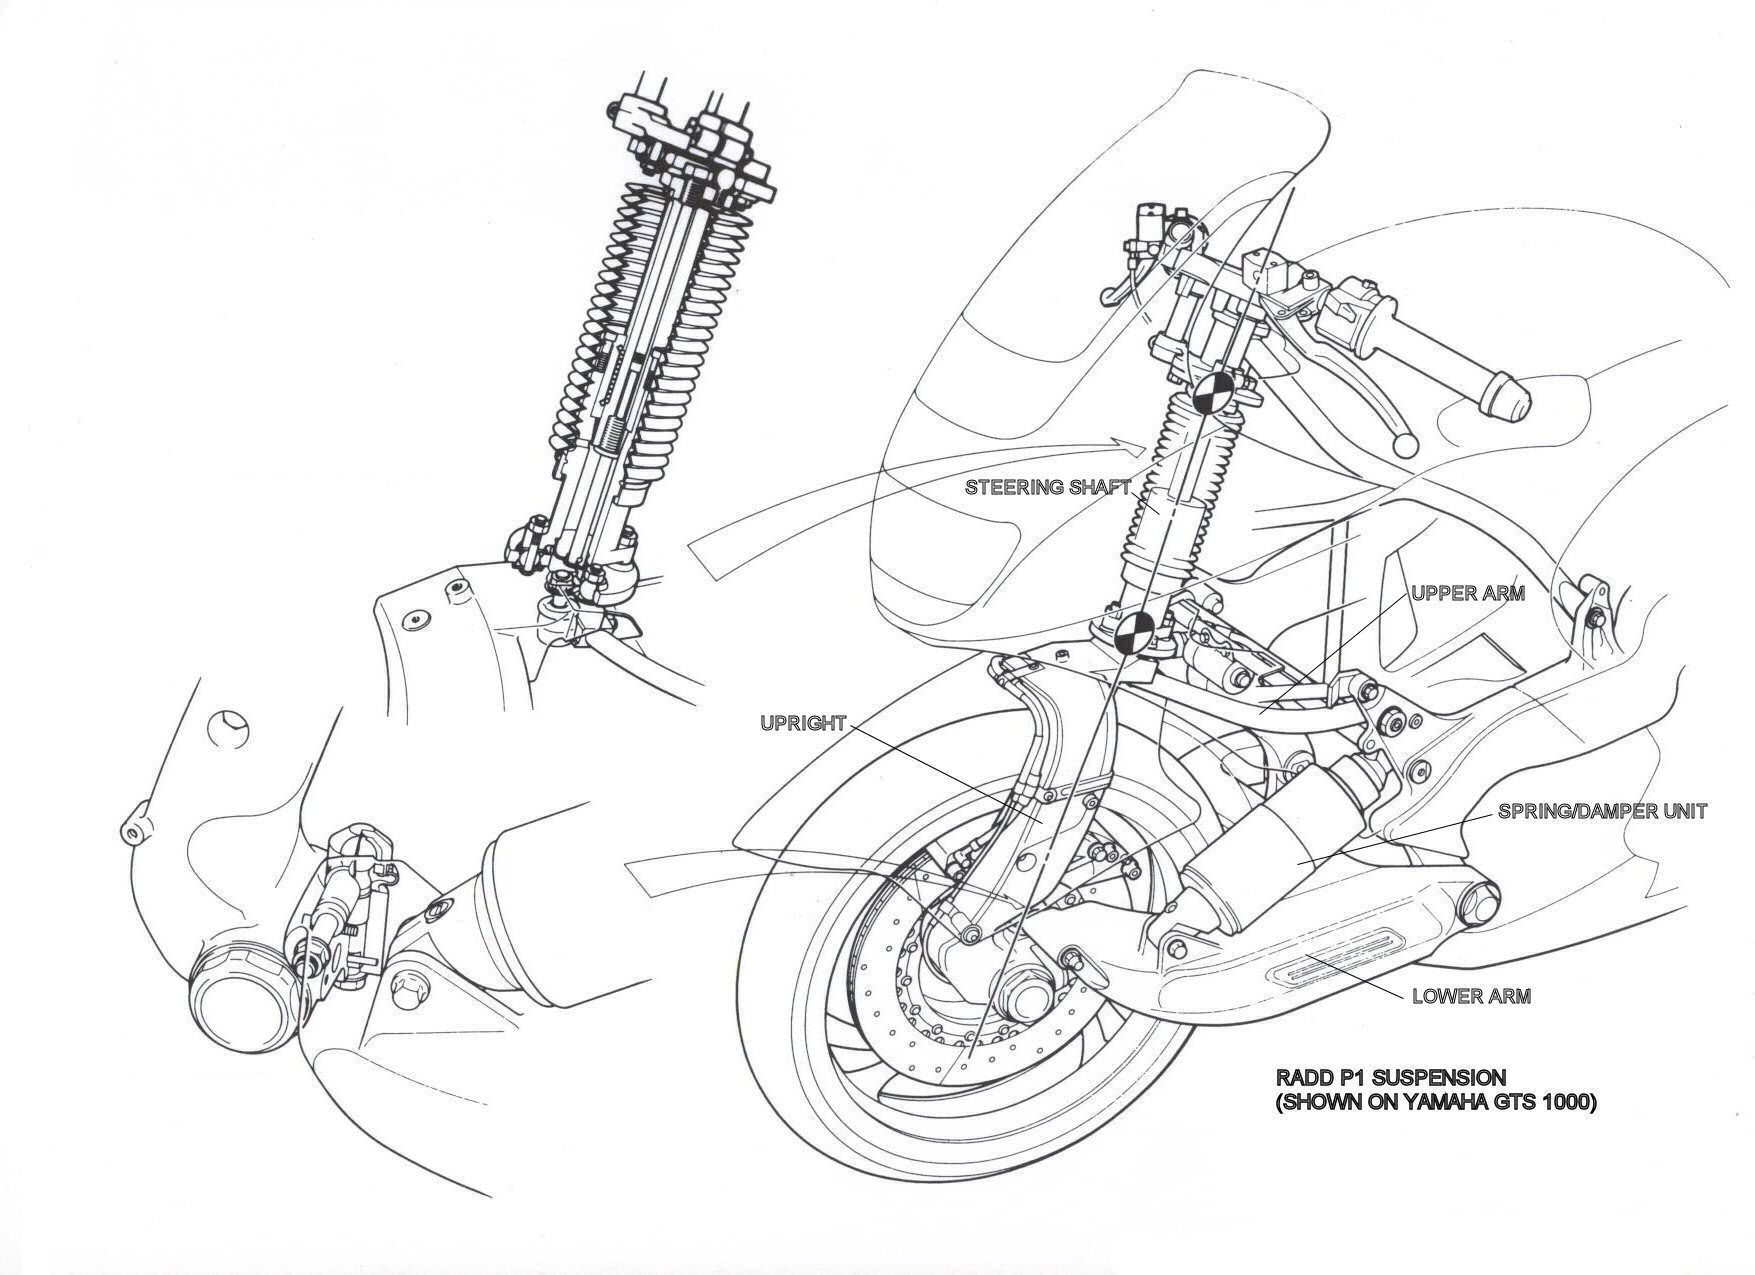 Motorcycle Technical Design